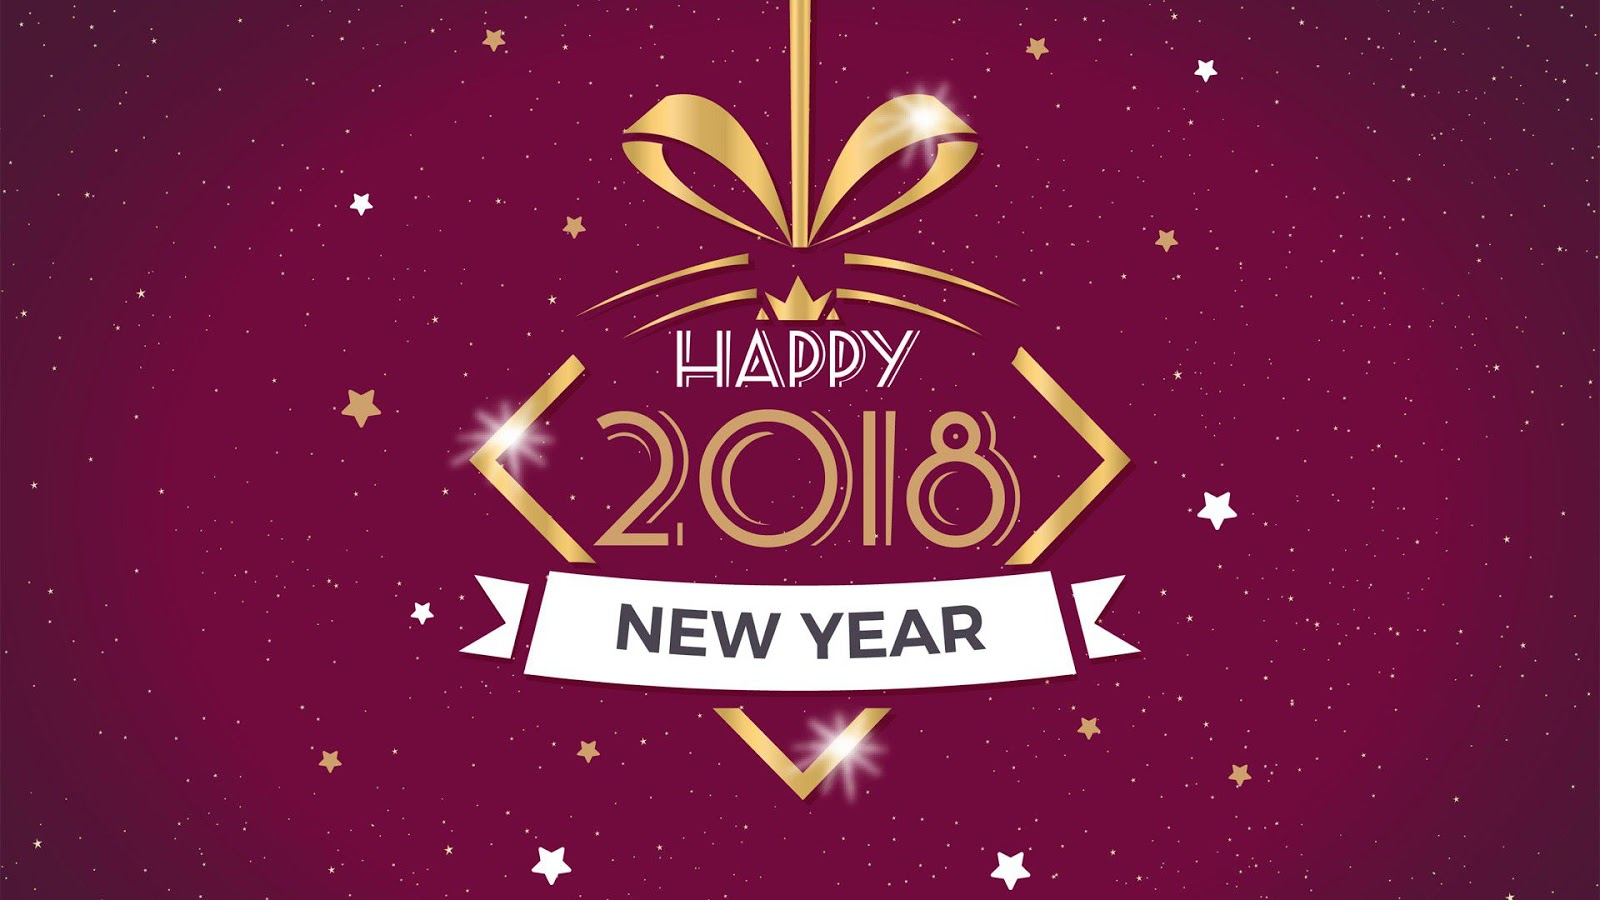 500 happy new year 2018 hd wallpapers images pictures 1600x900